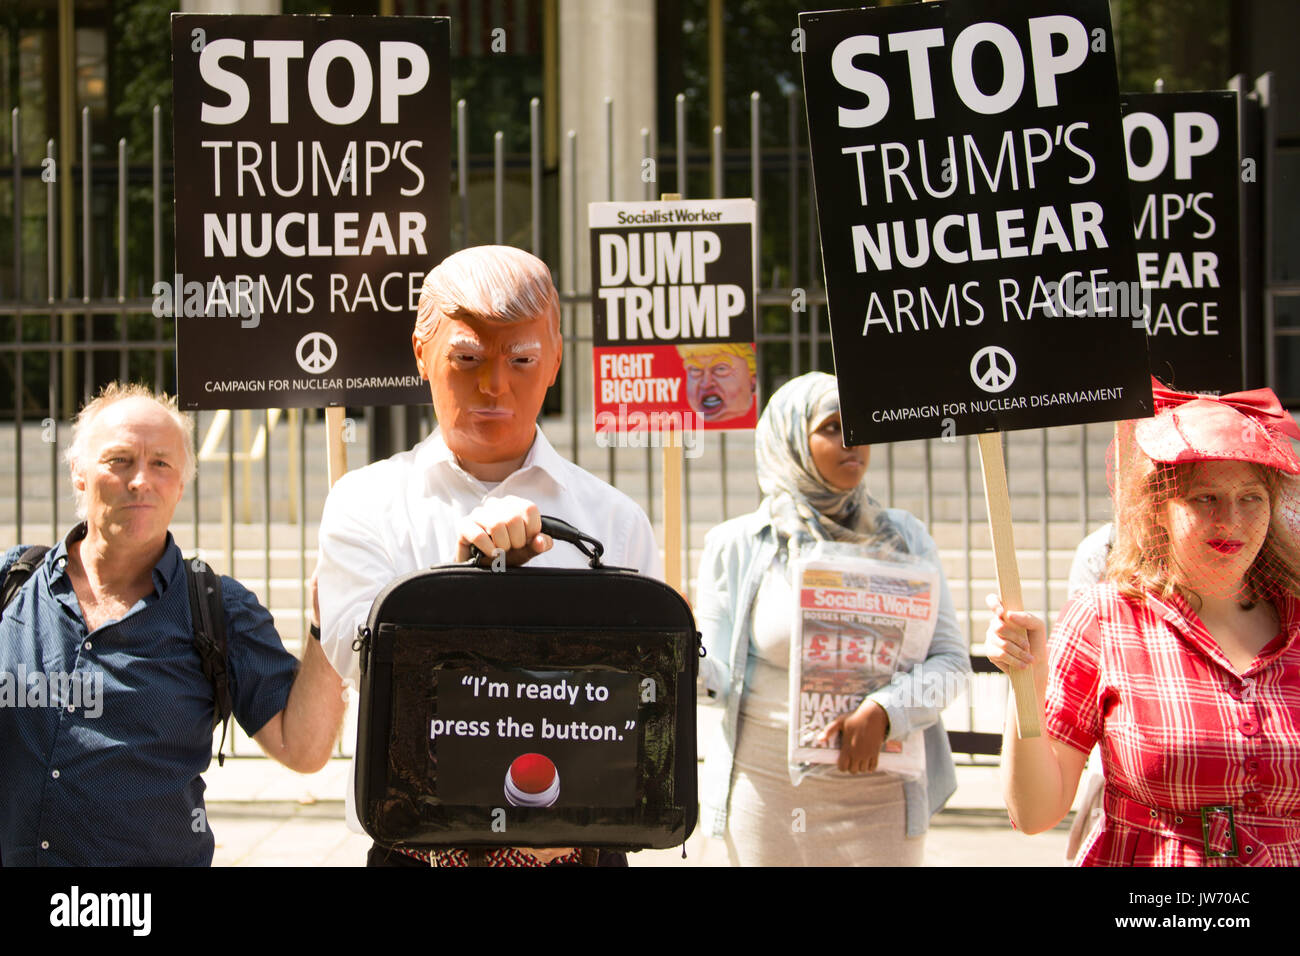 London, UK. 11 August, 2017. 'I'm ready to press the button' a person in a Donald Trump mask outside of the US Embassy as anti-war campaigners from the Stop the War Coalition and CND attempted to hand in a letter to the Embassy in Grosvenor Square, London calling for a de-escalation of the Korean crisis. David Rowe/ Alamy Live News. - Stock Image